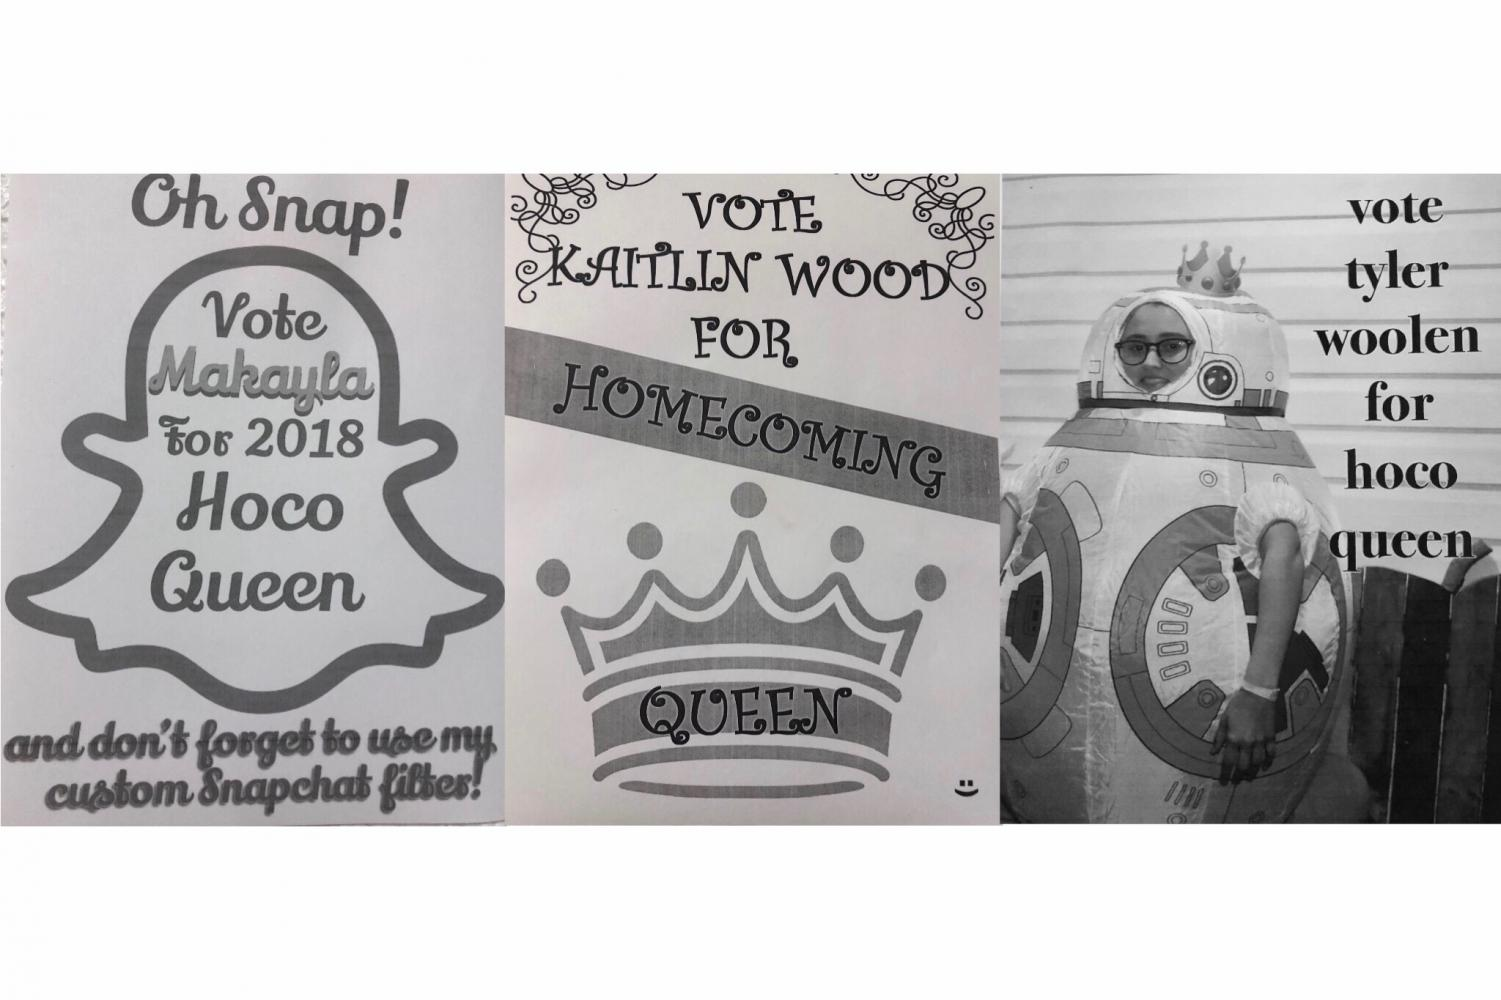 ( Photo Credit via Tyler Woolen ) Posters made by: Makayla McNett, Kaitlin Wood, and Tyler Woolen.